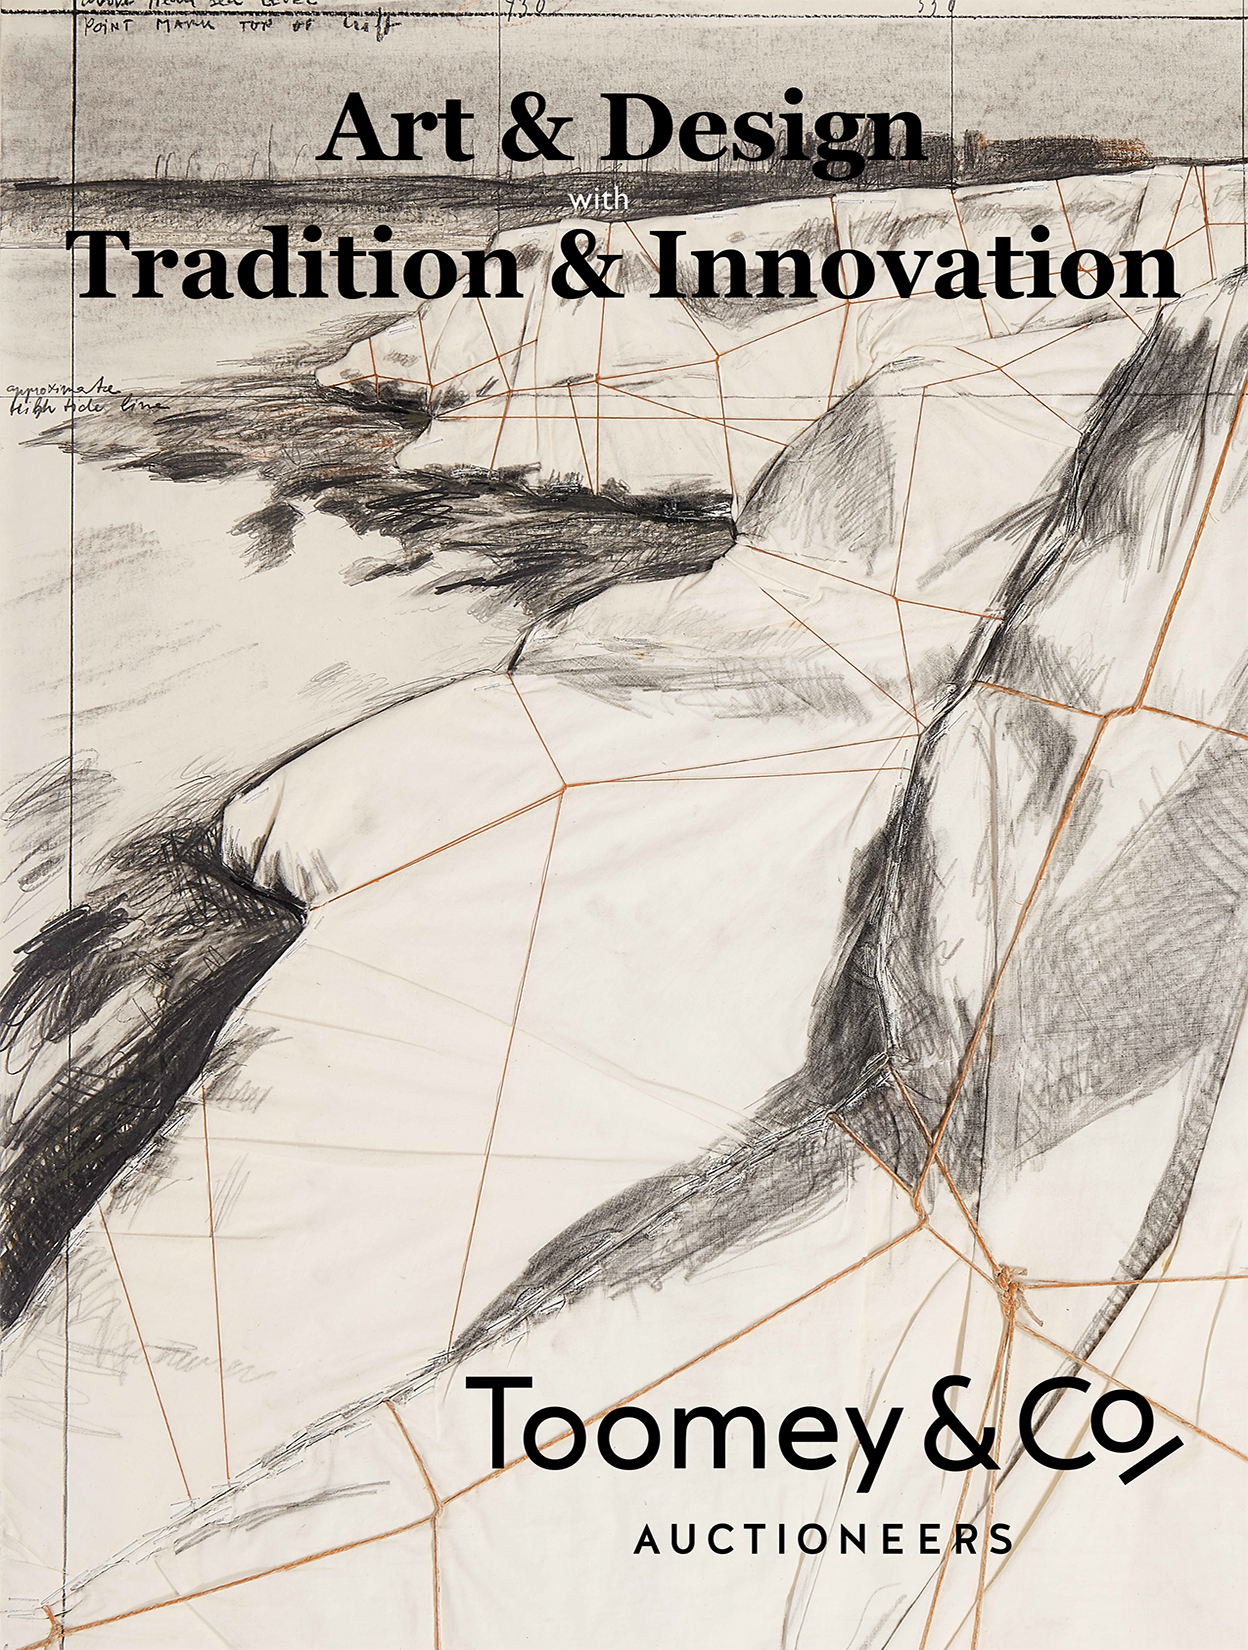 Sale 121: Art and Design with Tradition and Innovation, Auction Catalog, December 8, 2019